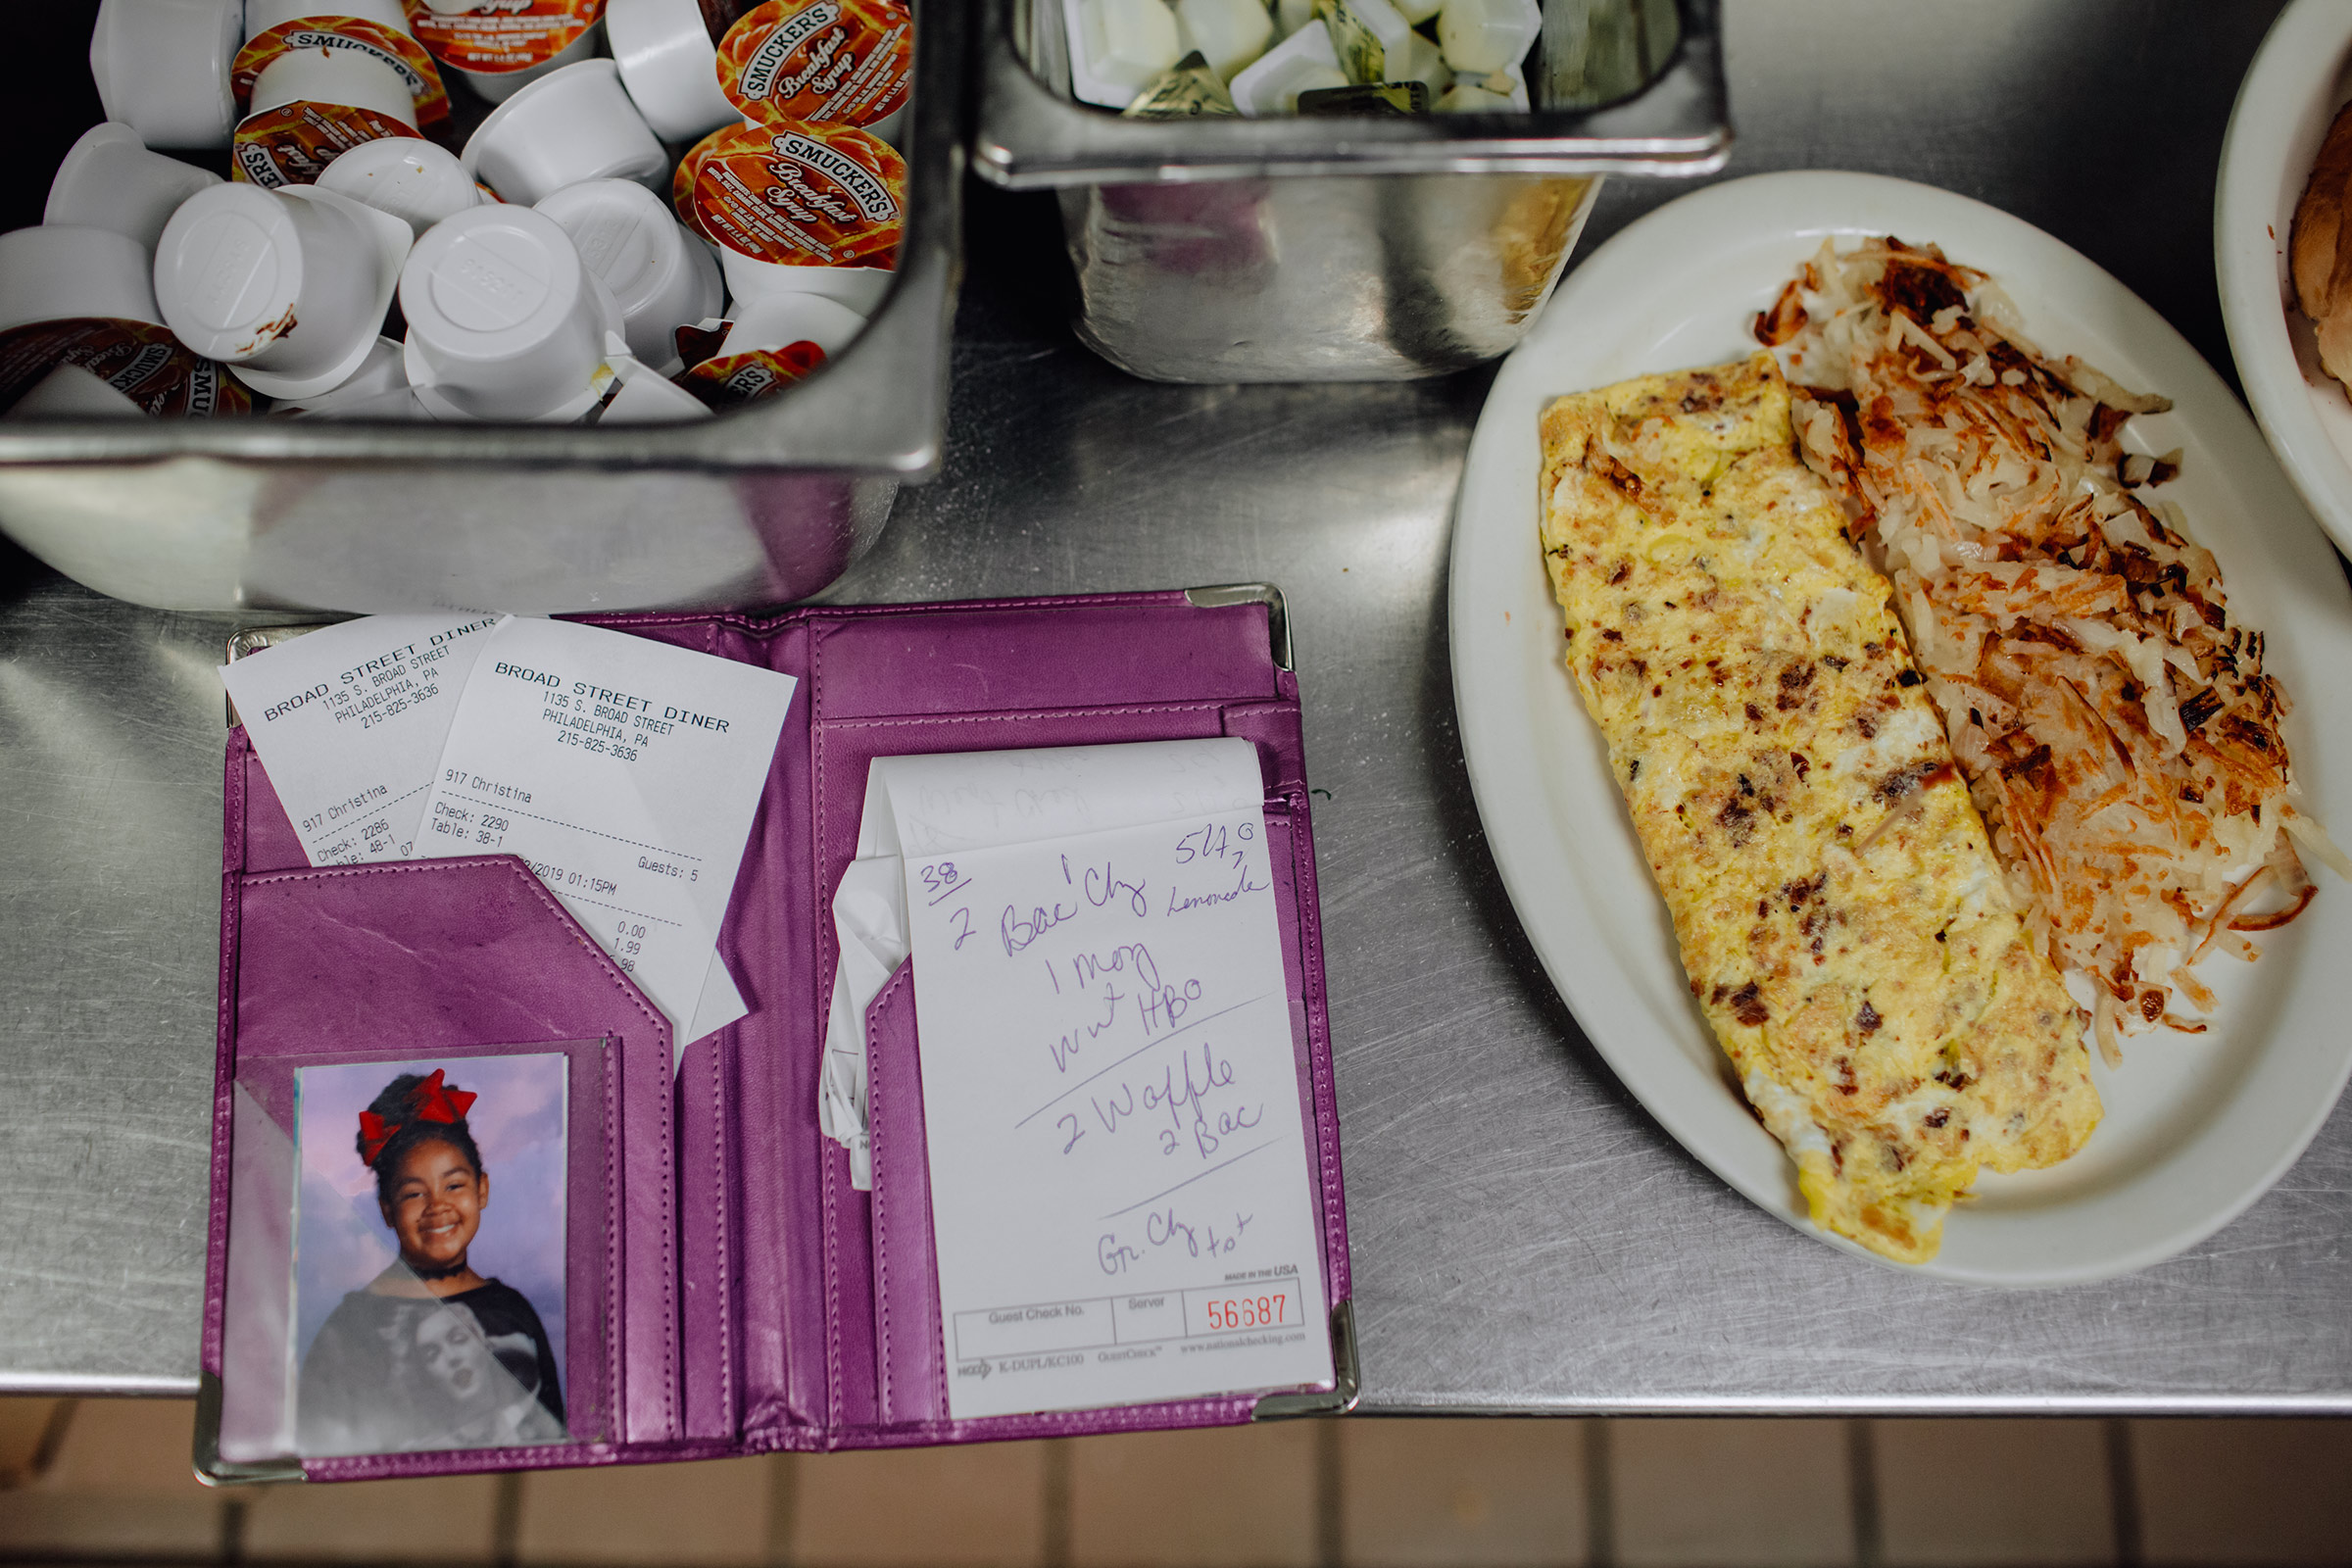 In the kitchen at the Broad Street Diner in Philadelphia, waitress Christina Munce keeps her daughter's photo next to her pad for taking orders. Sept. 2 issue.